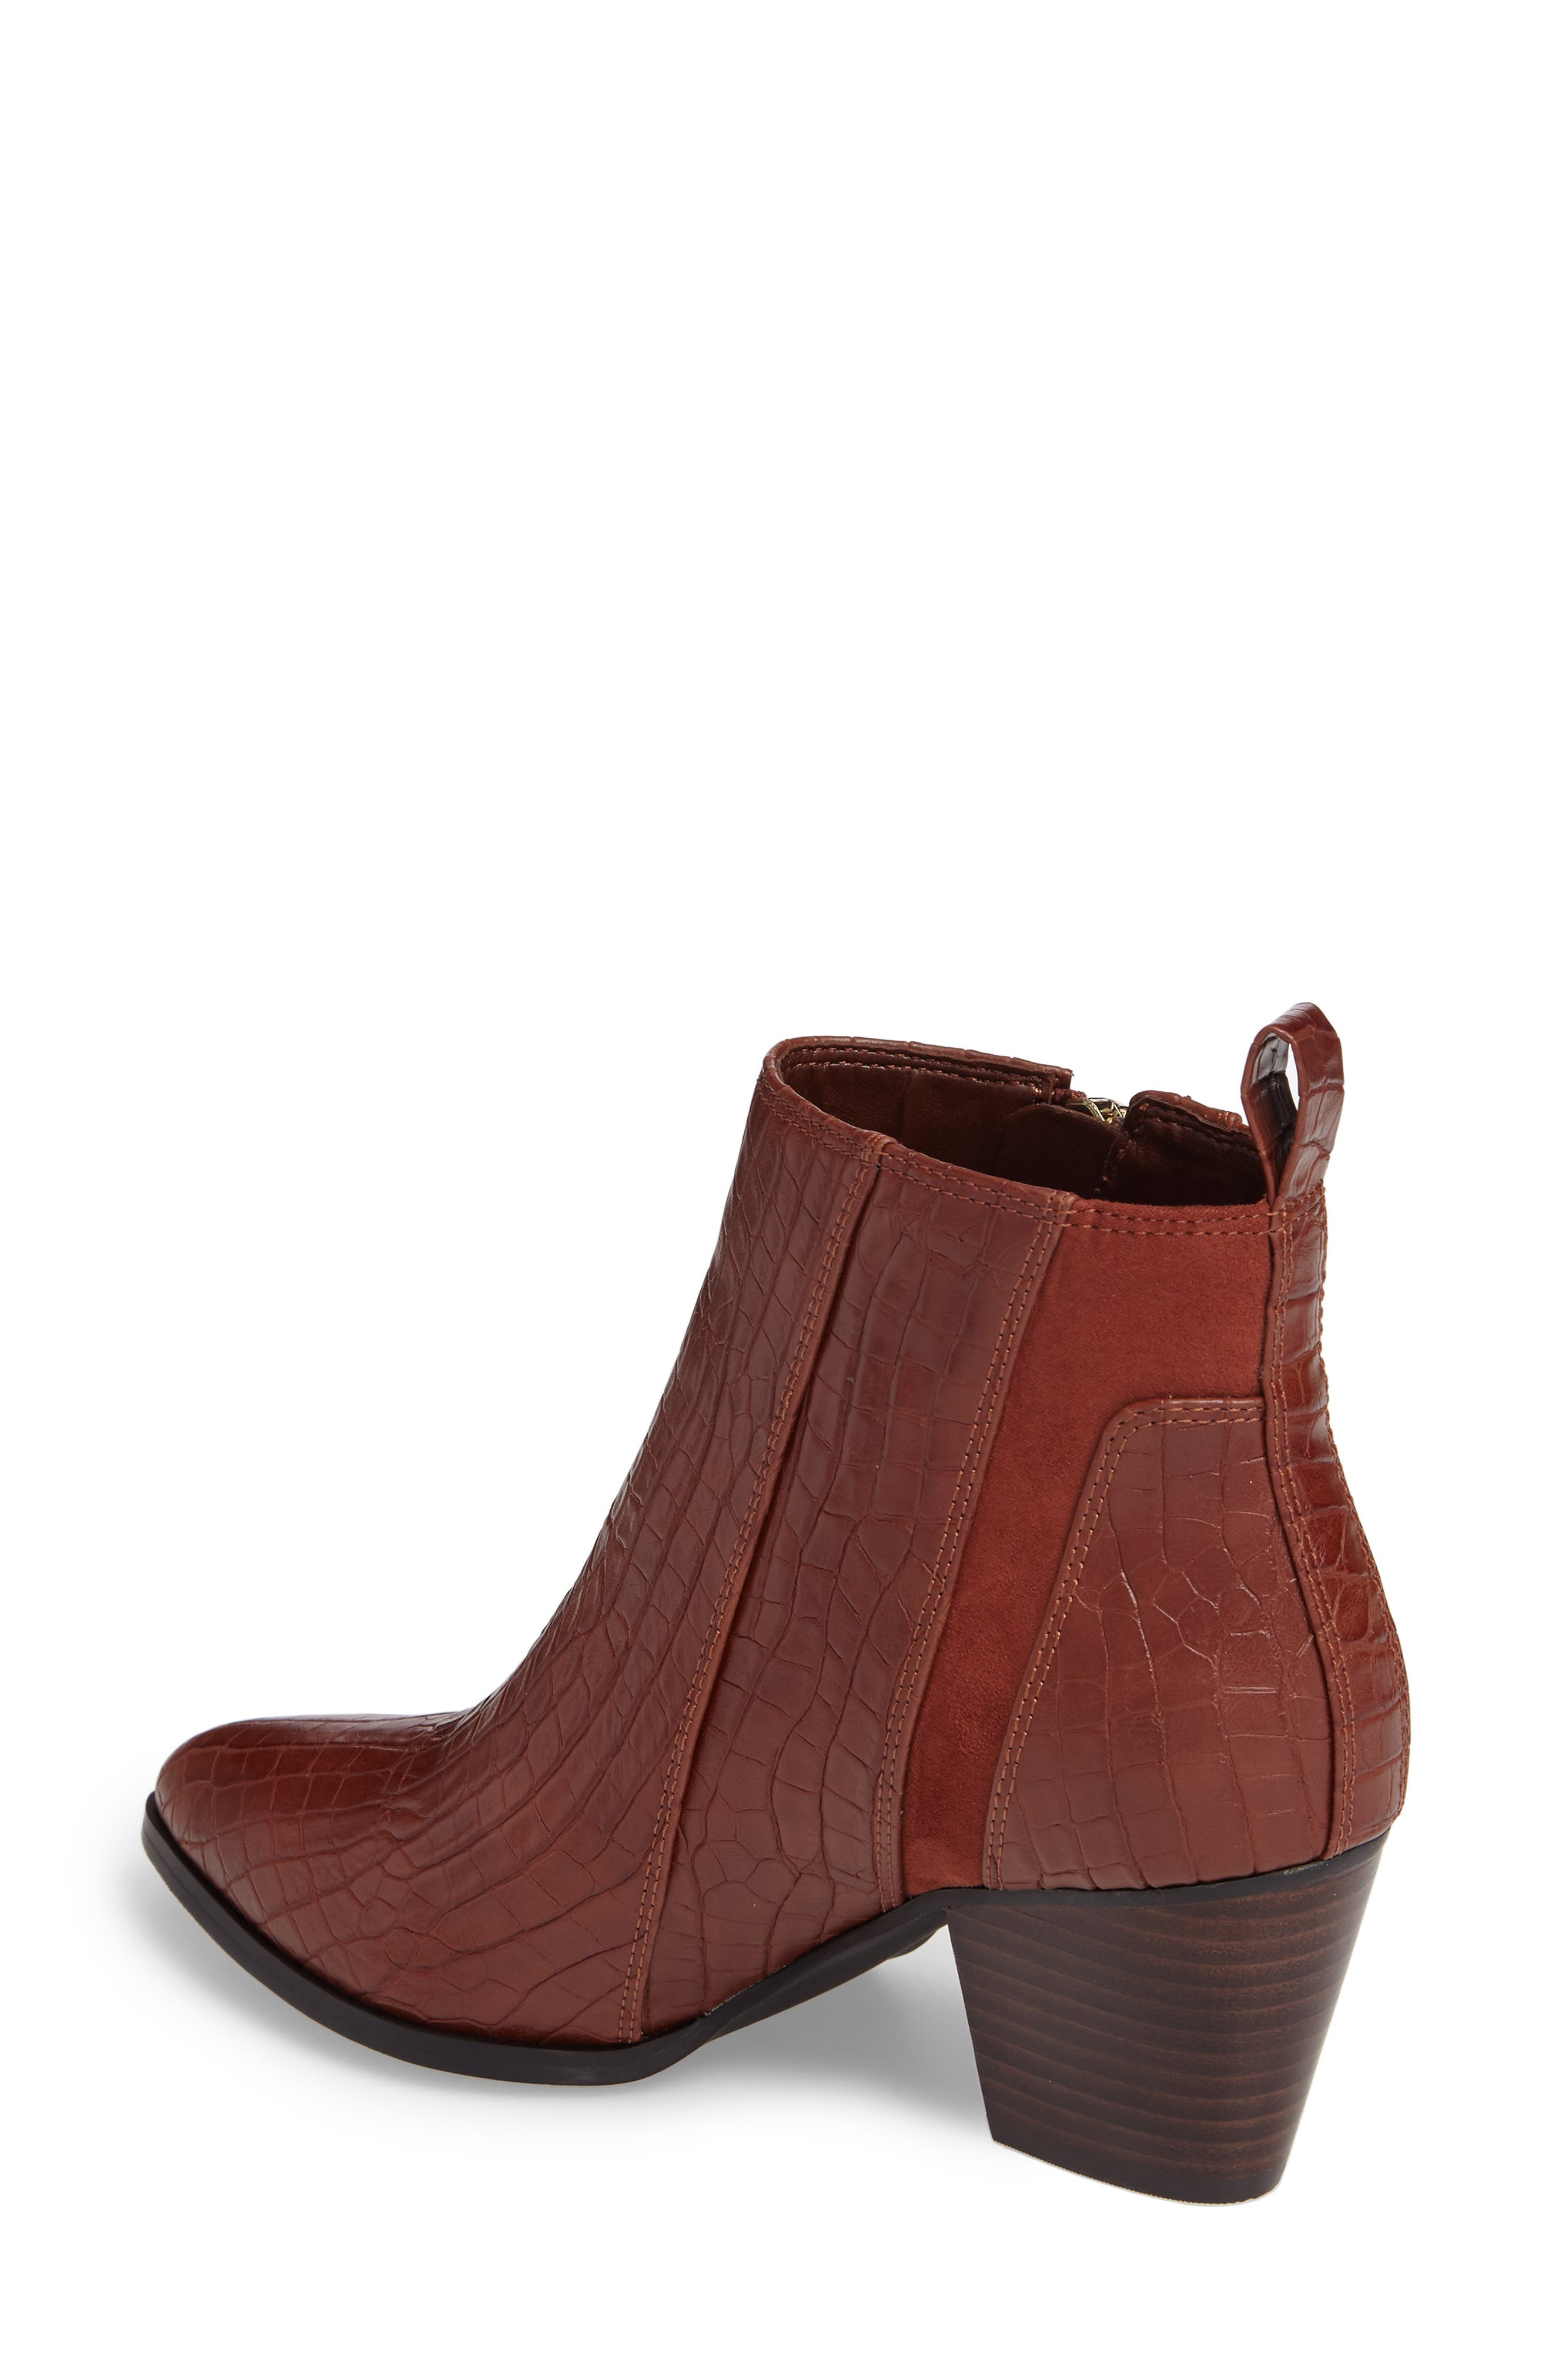 Everst II Pointy Toe Bootie,                             Alternate thumbnail 2, color,                             Tan Suede